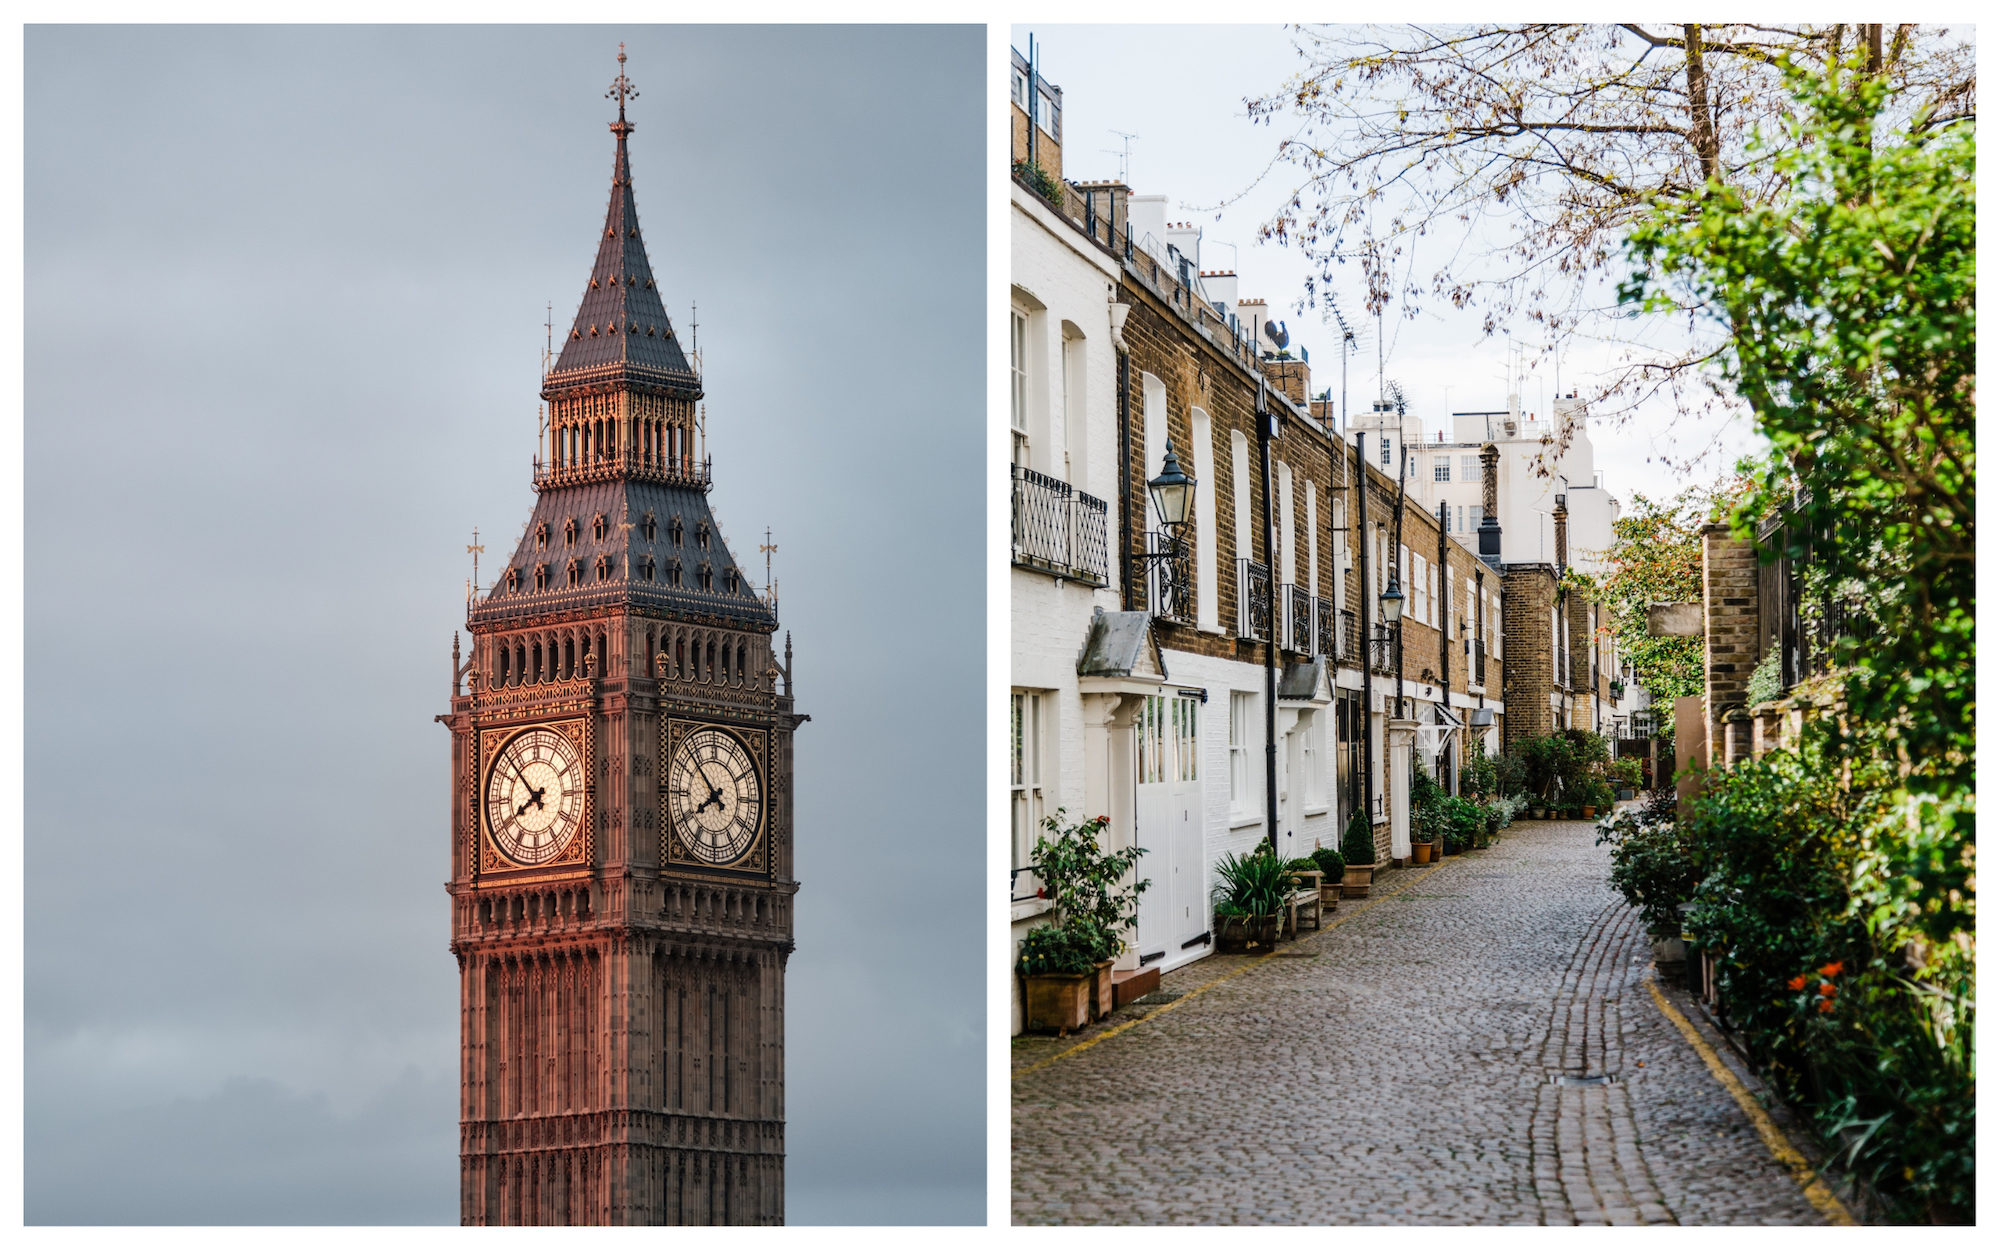 The top of the Big Ben in London (left). Charming cobblestone streets of London lined by terraced houses (right).